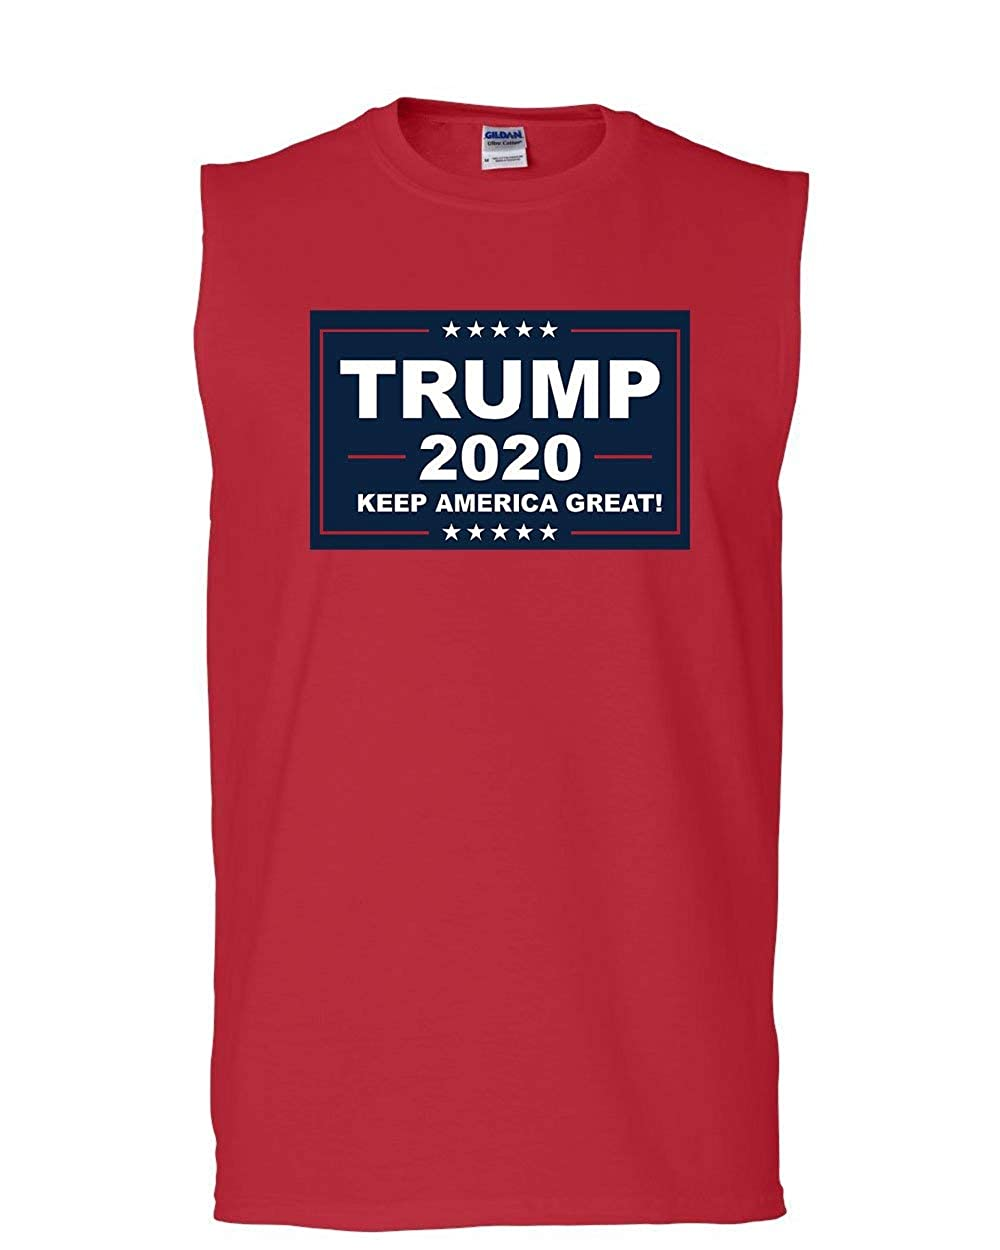 Tee Hunt Trump 2020 Keep America Great Muscle Shirt MAGA Republican Political Sleeveless